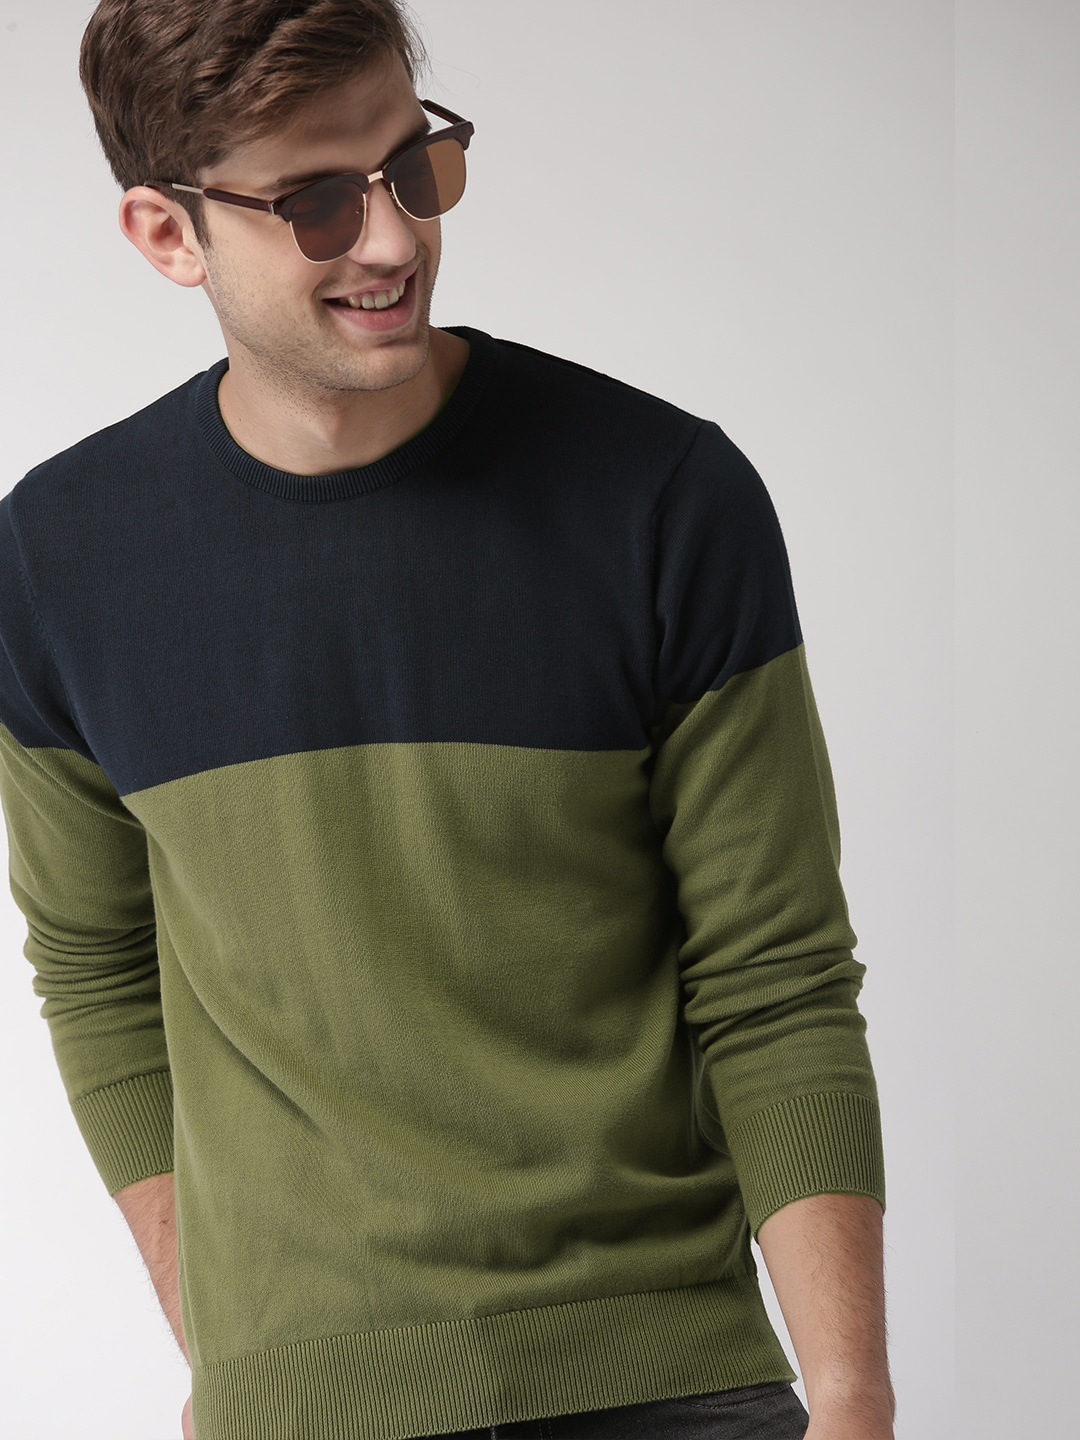 Mast & Harbour Men Olive Green & Navy Blue Colourblocked Pullover Sweater-5591291